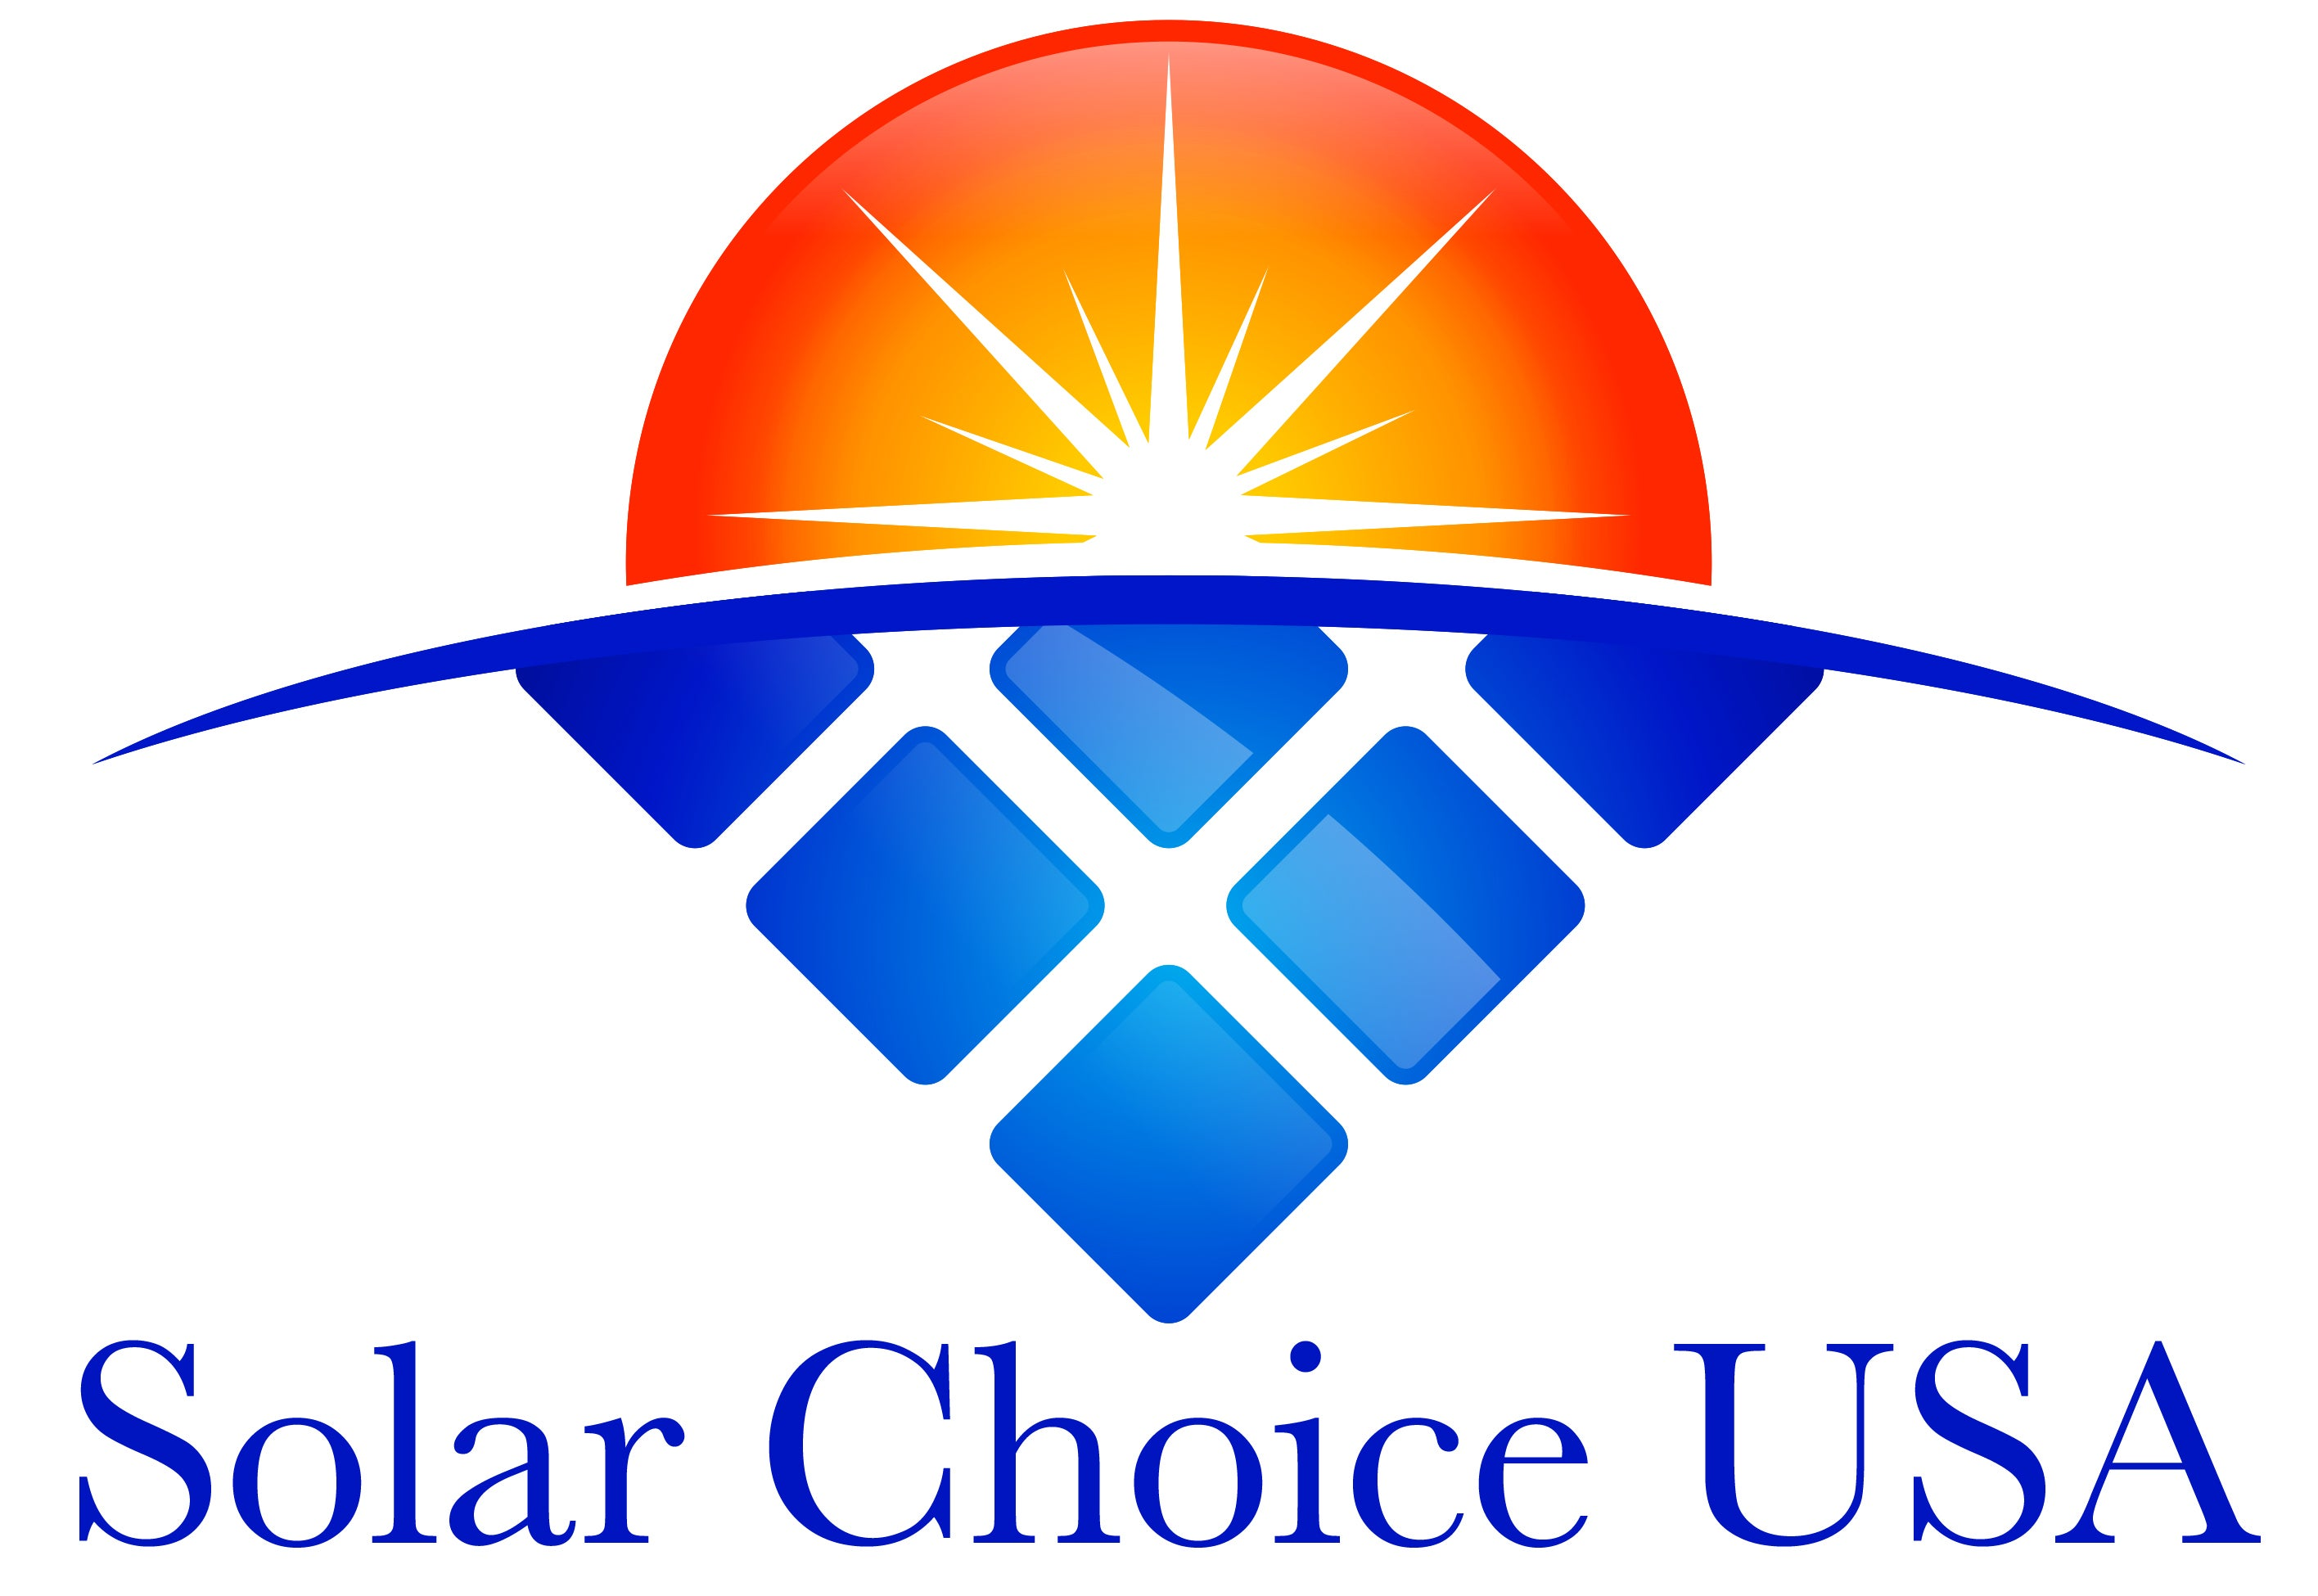 Solar Choice USA